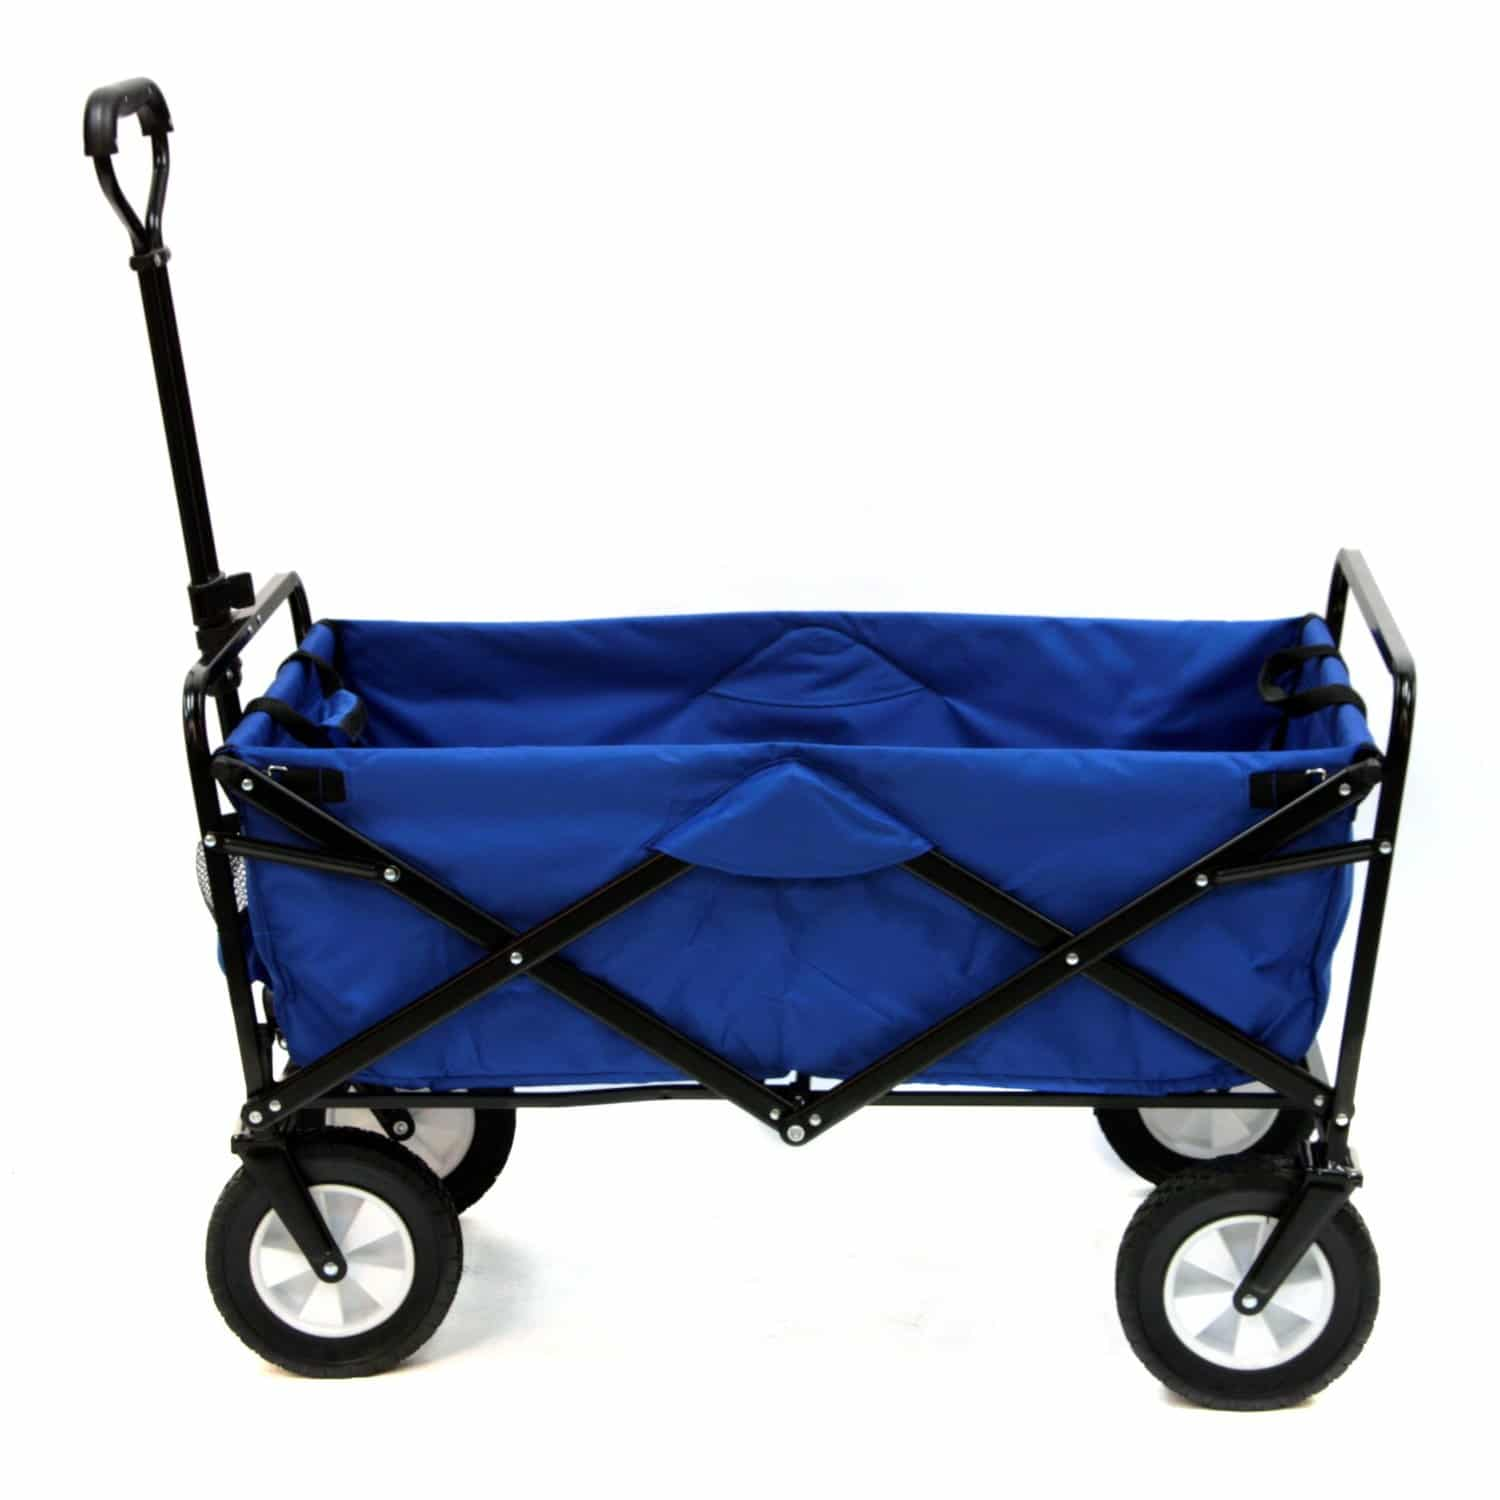 top 5 best portable collapsible folding wagons in 2017 reviews may 2017. Black Bedroom Furniture Sets. Home Design Ideas